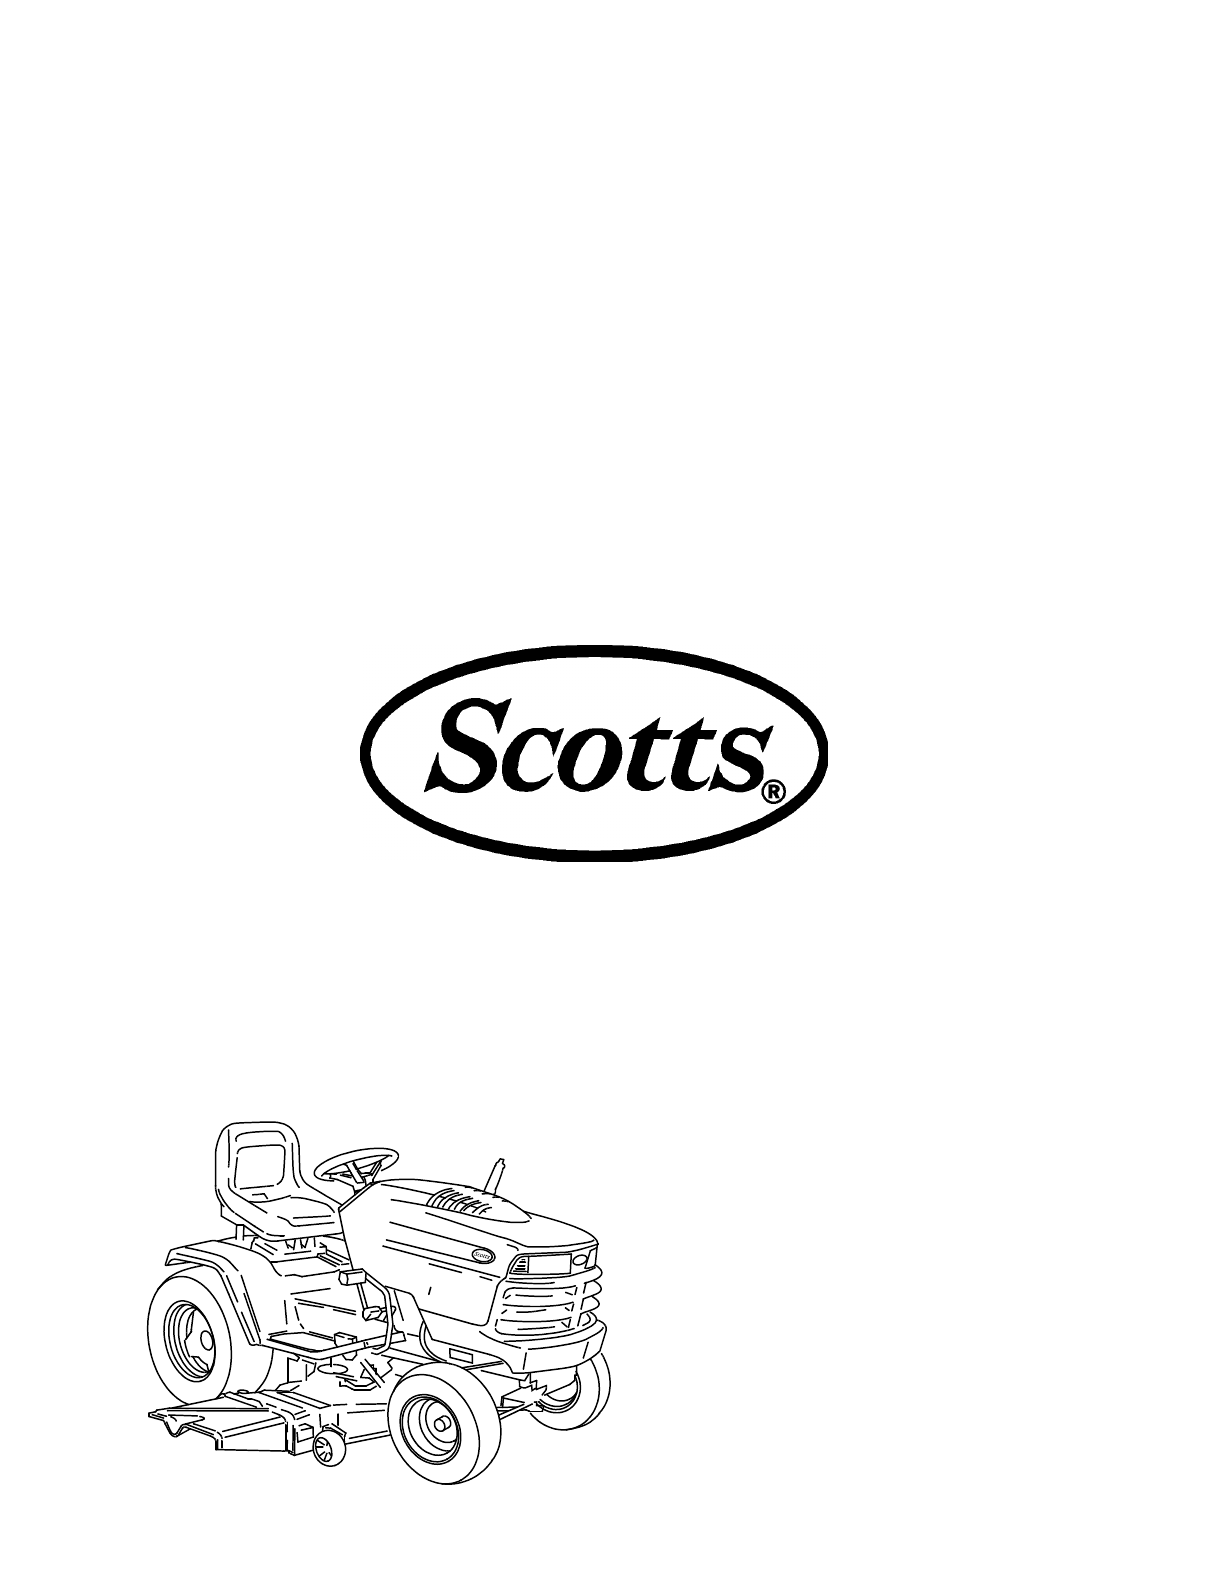 74d6465d 604f df44 71f6 2ff6ec9f391a bg1 scotts lawn mower s2048, s2554 user guide manualsonline com scotts s1642 wiring diagram at cos-gaming.co